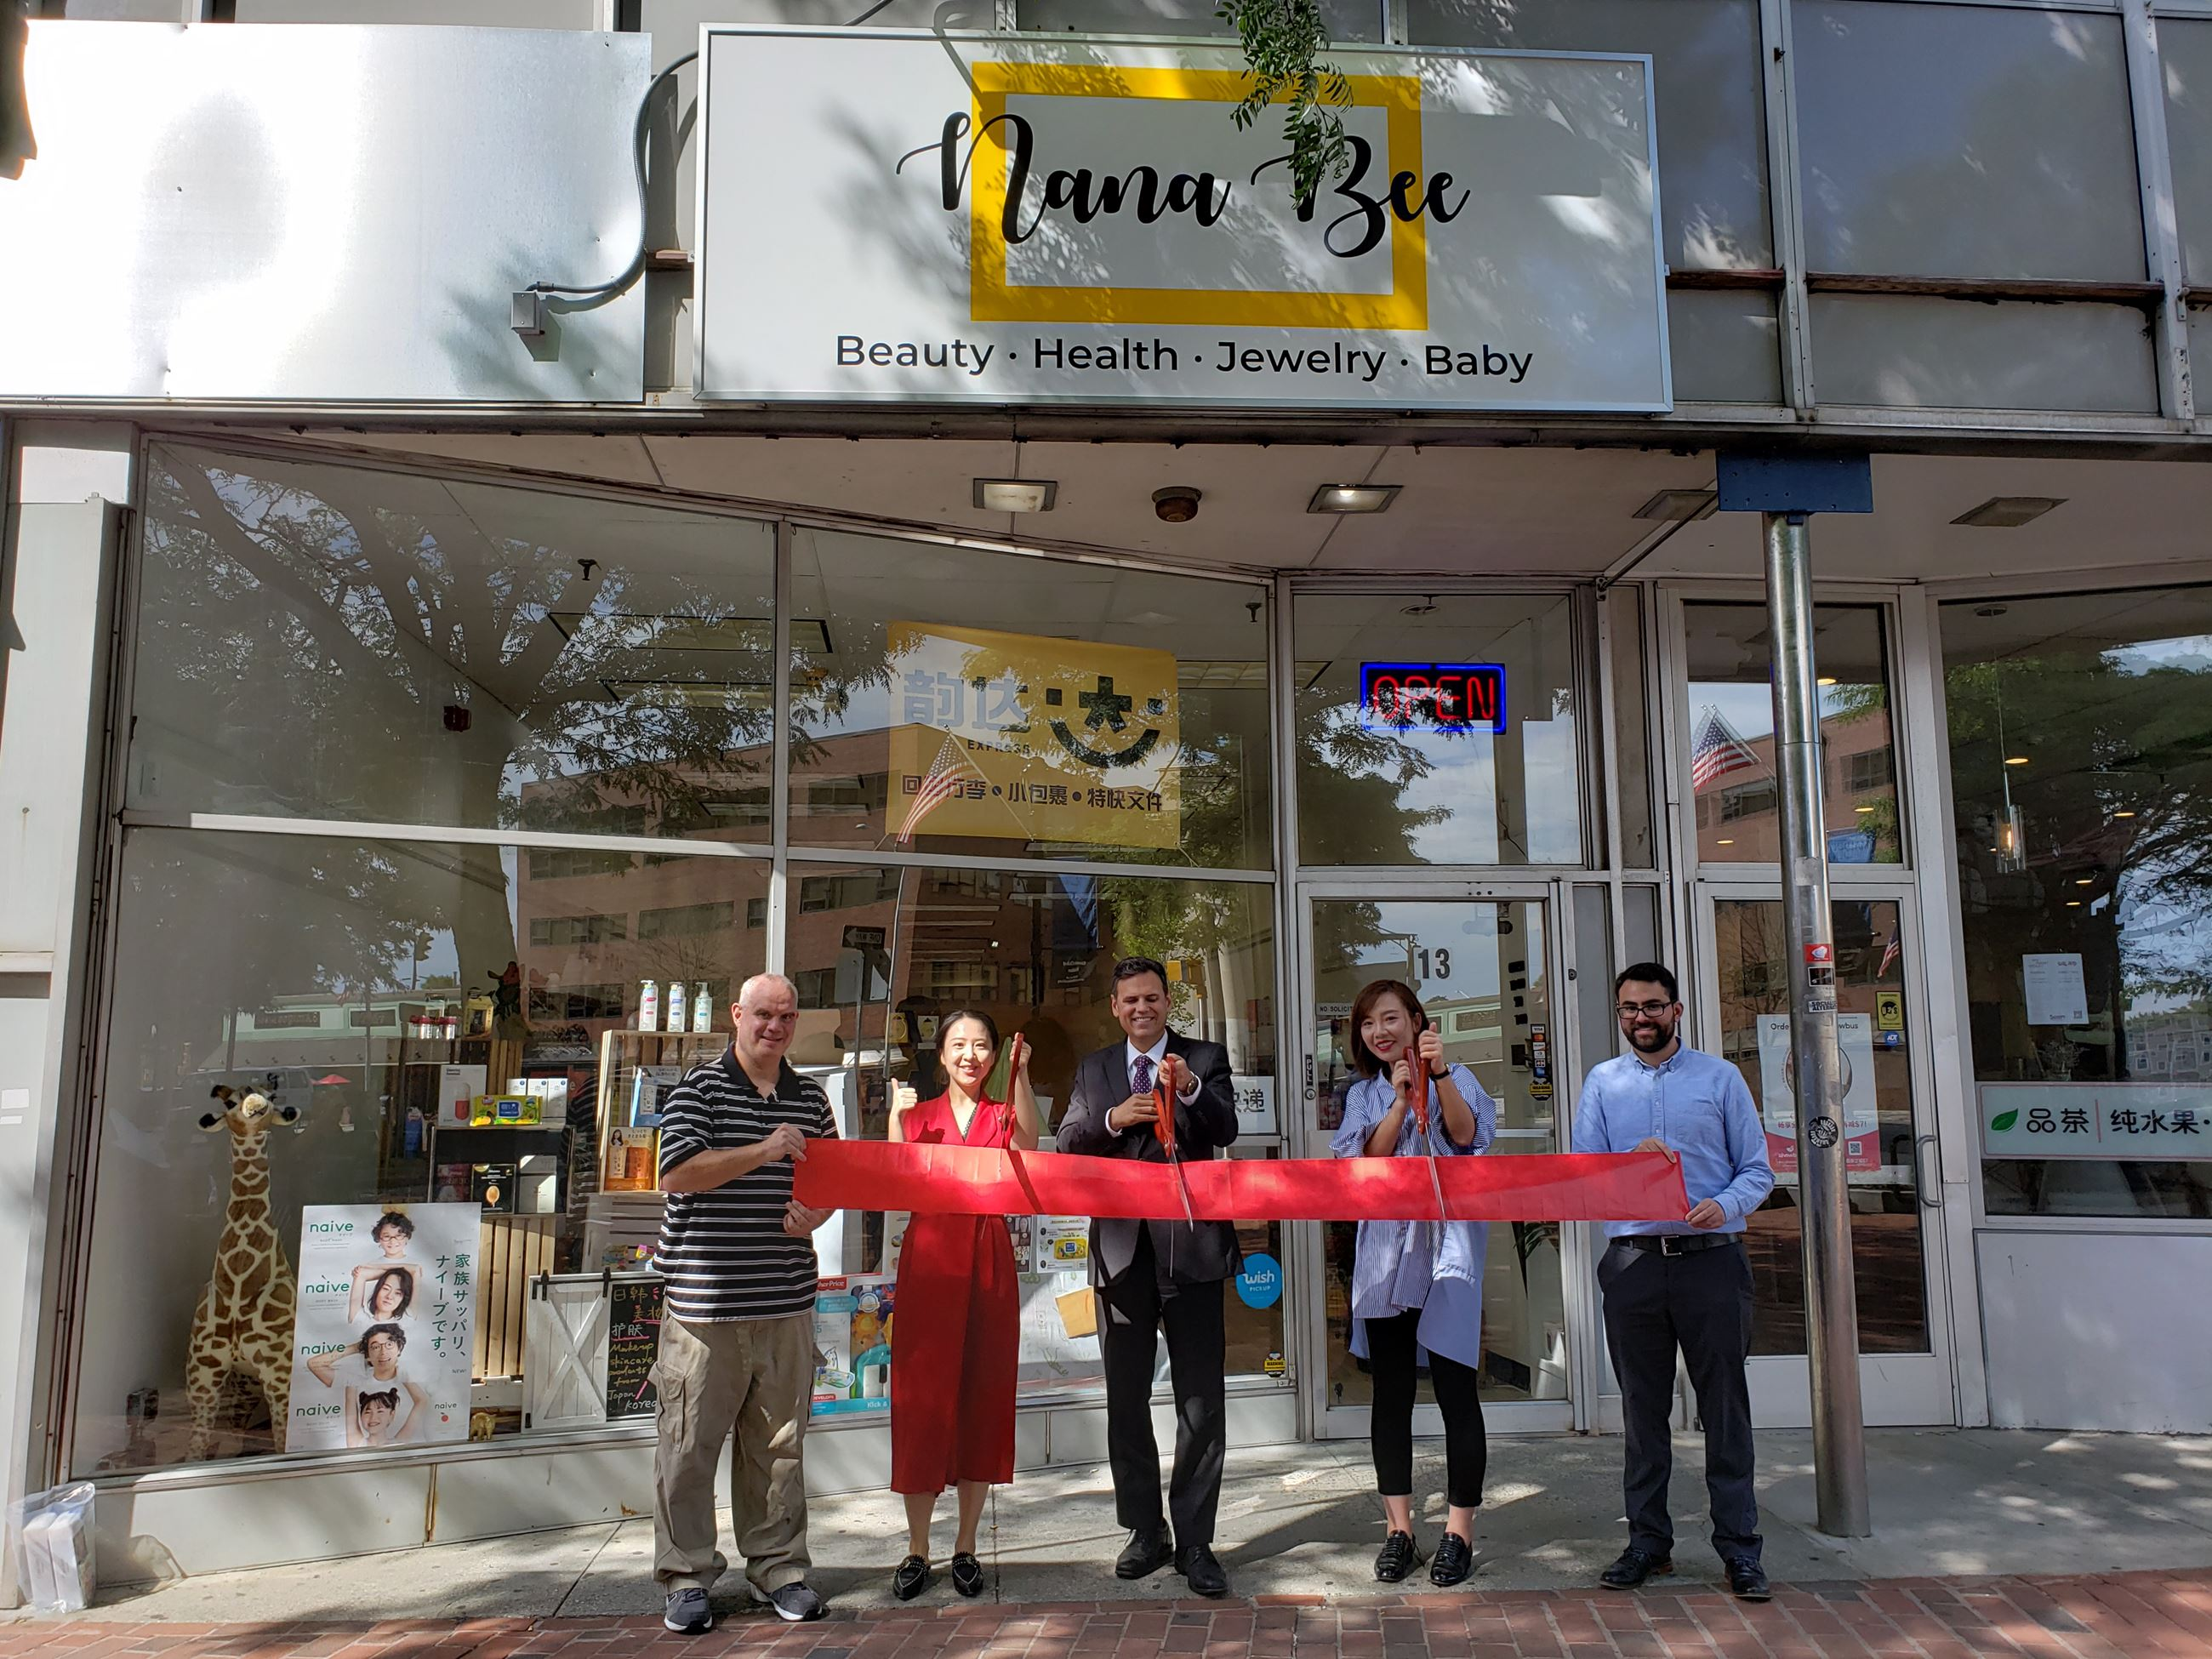 Nana Bee Ribbon Cutting (From left) Peter Caso, Jianing Wang, Mayor Gary Christenson, Owner Lei Xu,